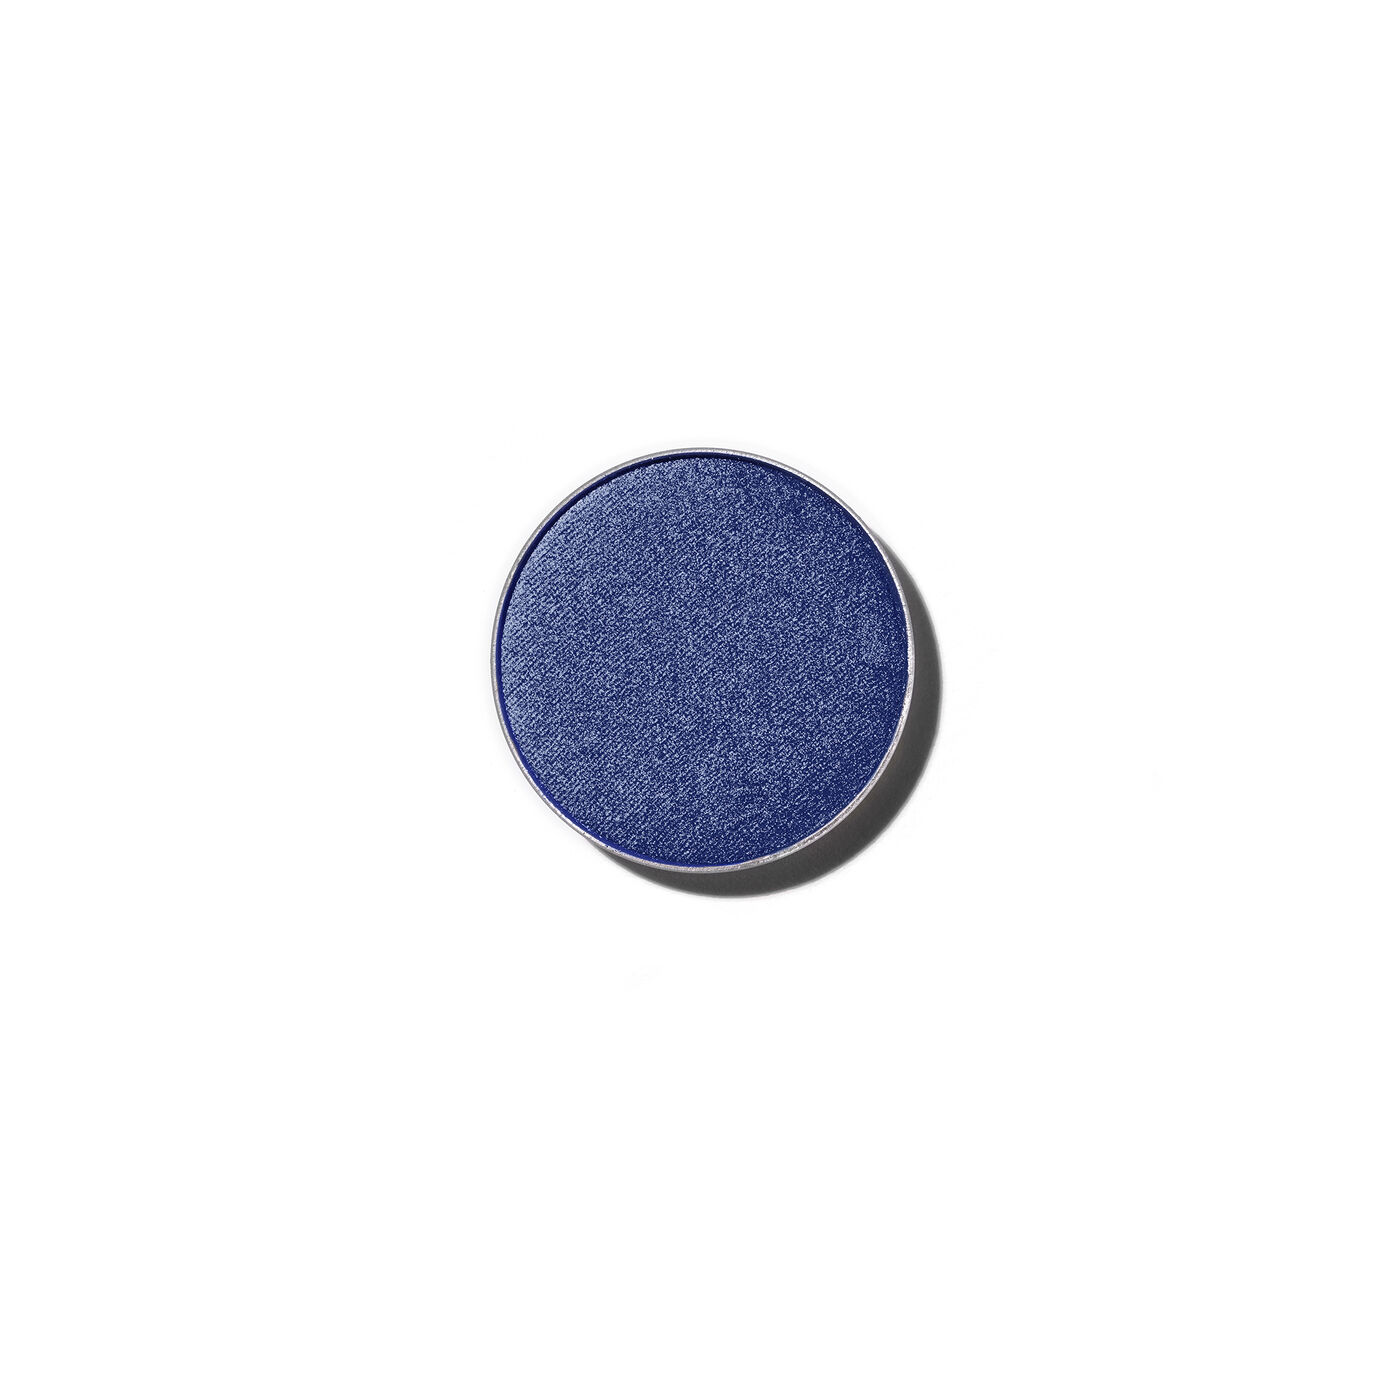 Eyeshadow Singles - Star Cobalt